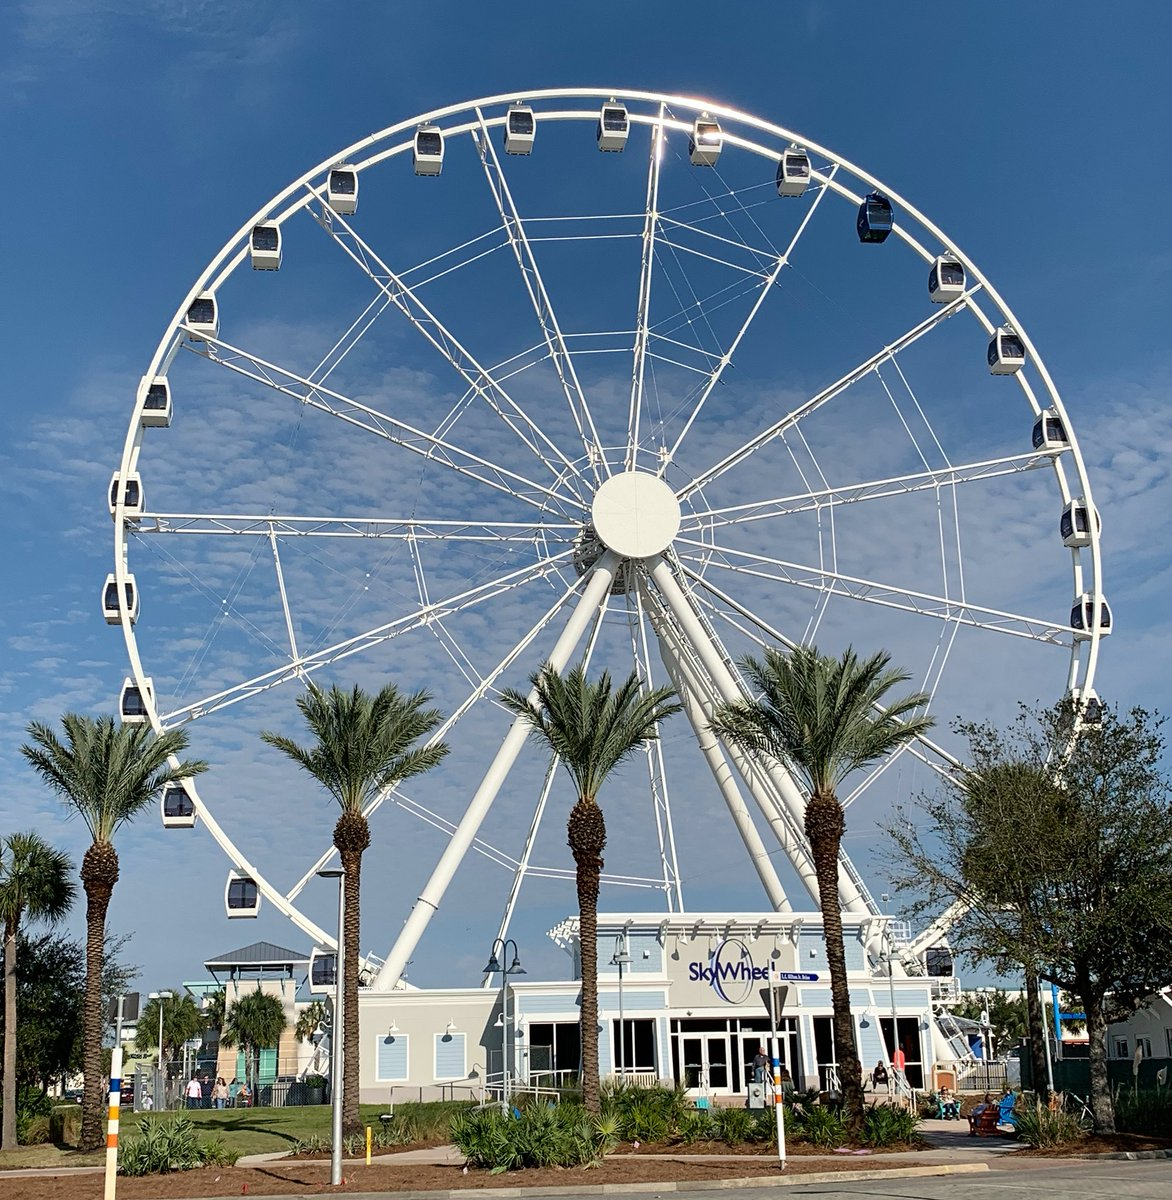 A wheel adventure with Tammy and David   #SashaInPCB #VisitFlorida #VisitPCB #Florida #travel #PanamaCityBeach <br>http://pic.twitter.com/9h9gRnyB7G &ndash; à Ferris Wheel (Pier Park)